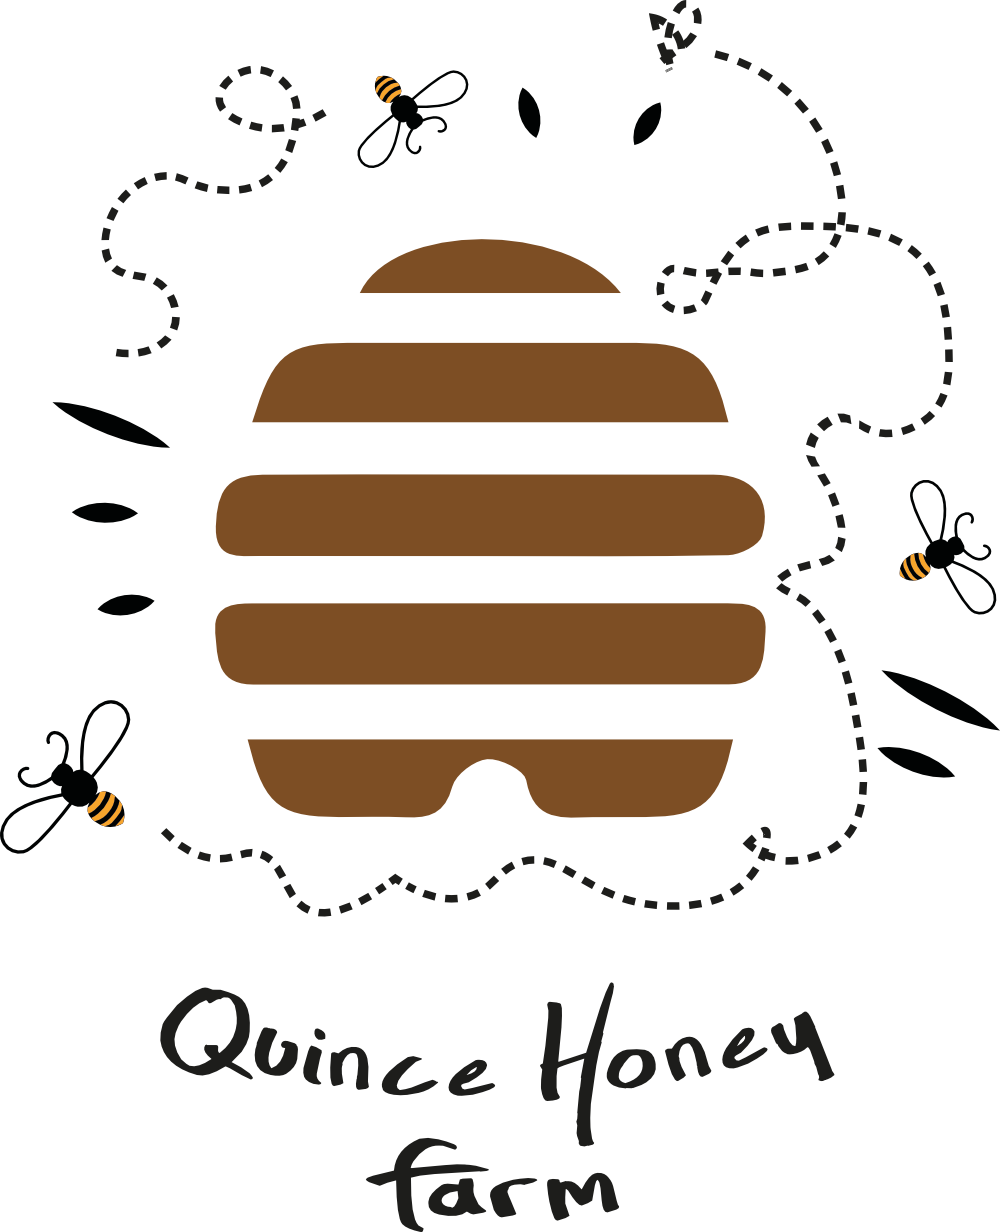 Honeycomb clipart honey bee house. Pollution archives quince farm